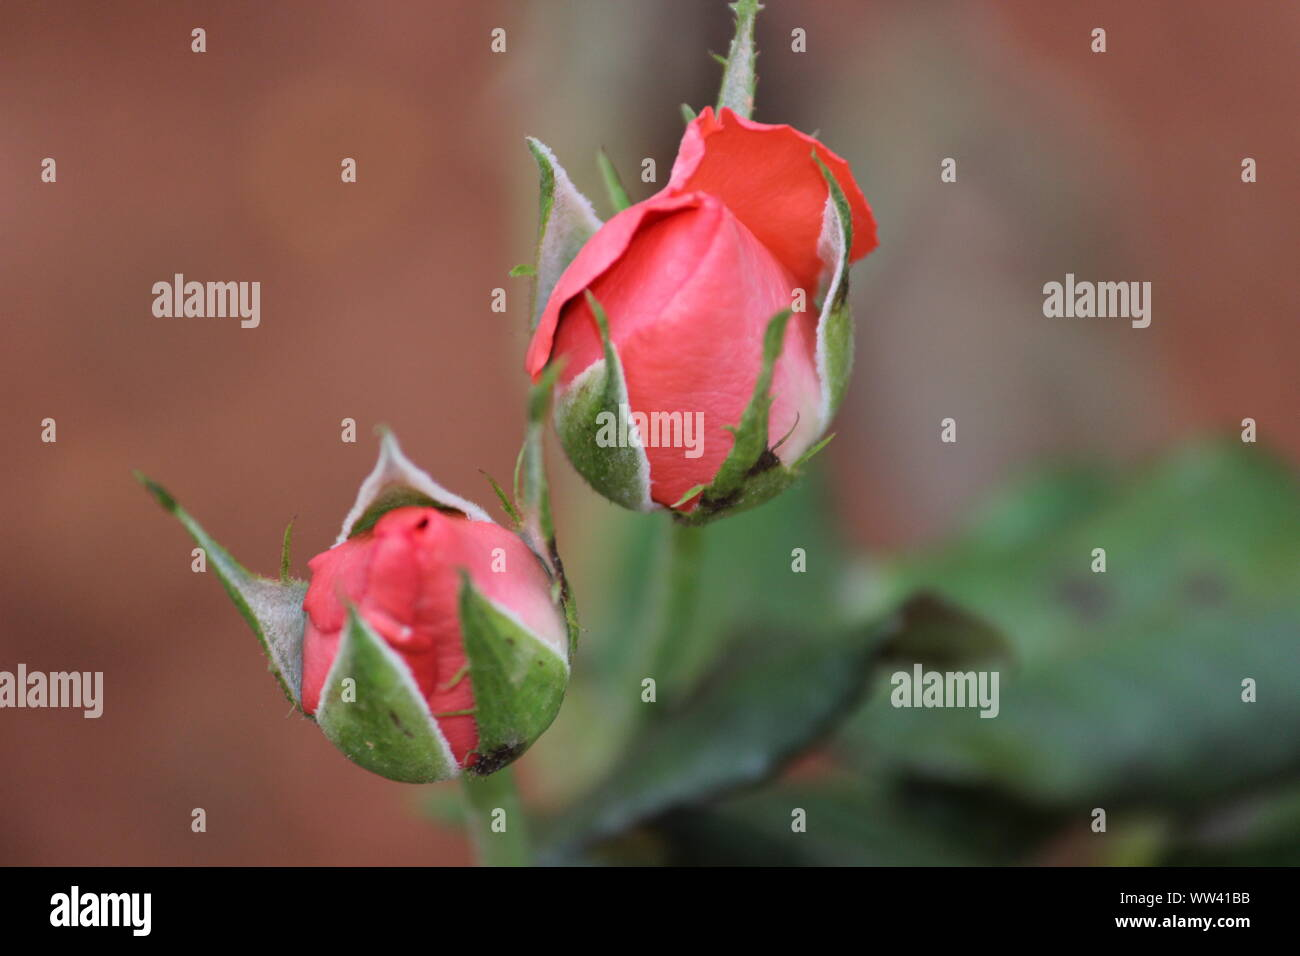 THE PINK COLOUR ROSE BUDS Stock Photo